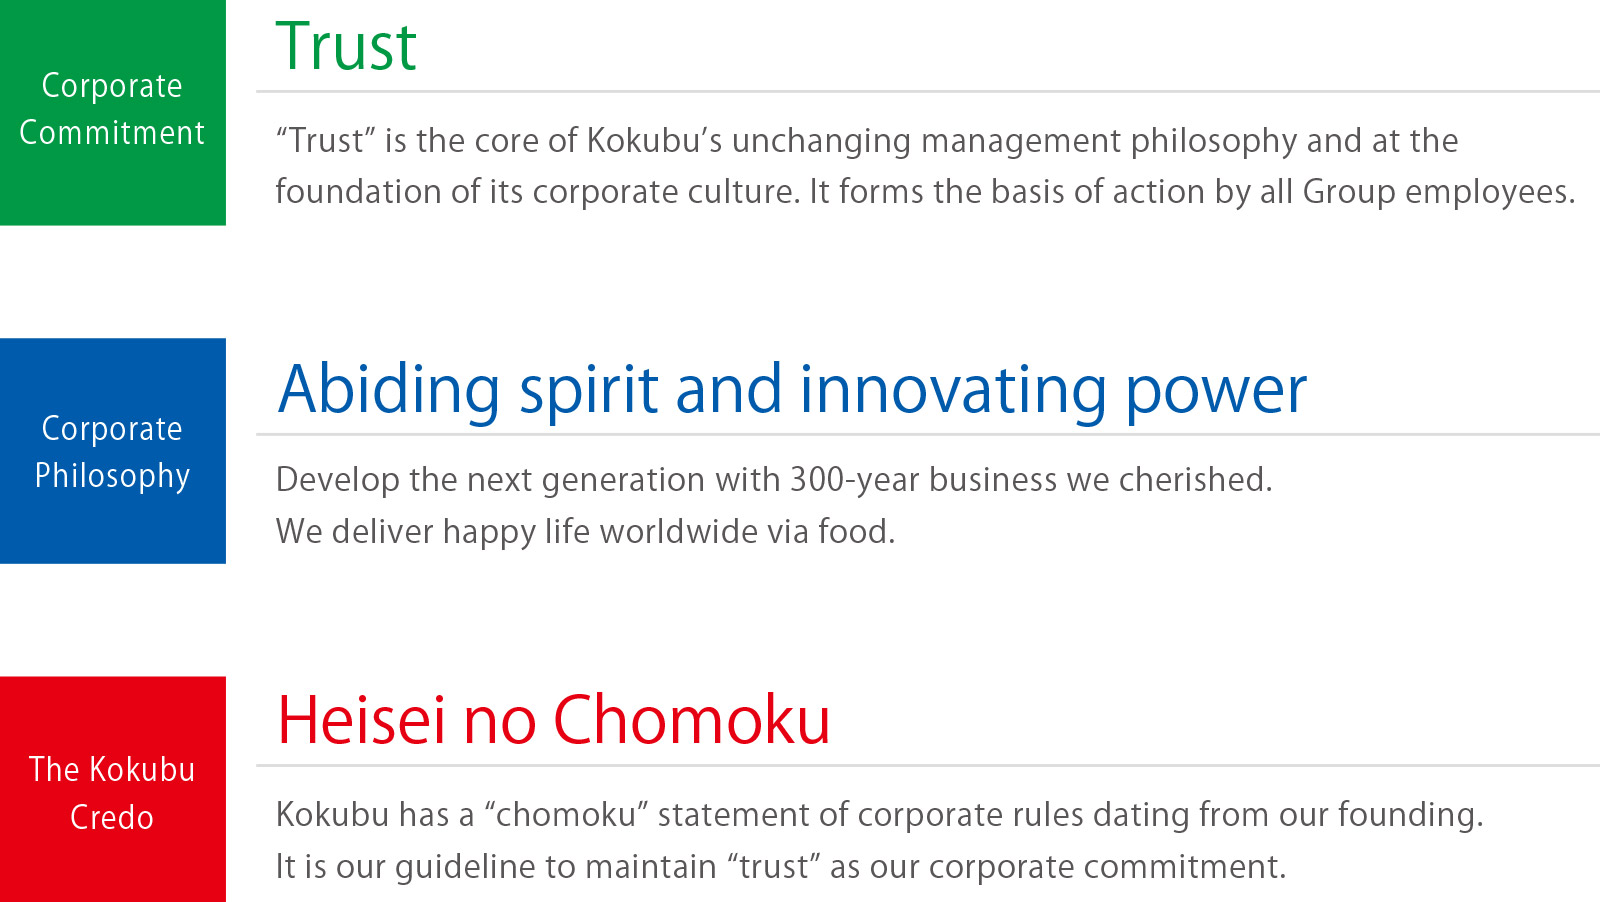 Corporate Commitment 'Trust' 'Trust' is the core of Kokubu's unchanging management philosophy and at the foundation of its corporate culture. It forms the basis of action by all Group employees. Corporate Philosophy 'Abiding spirit and innovating power' Develop the next generation with 300-year business we cherished. We deliver happy life worldwide via food. The Kokubu Credo serving as both an action charter and a behavioral code 'Heisei no Chomoku' Kokubu has a 'chomoku' statement of corporate rules dating from our founding. It is our guideline to maintain 'trust' as our corporate commitment.